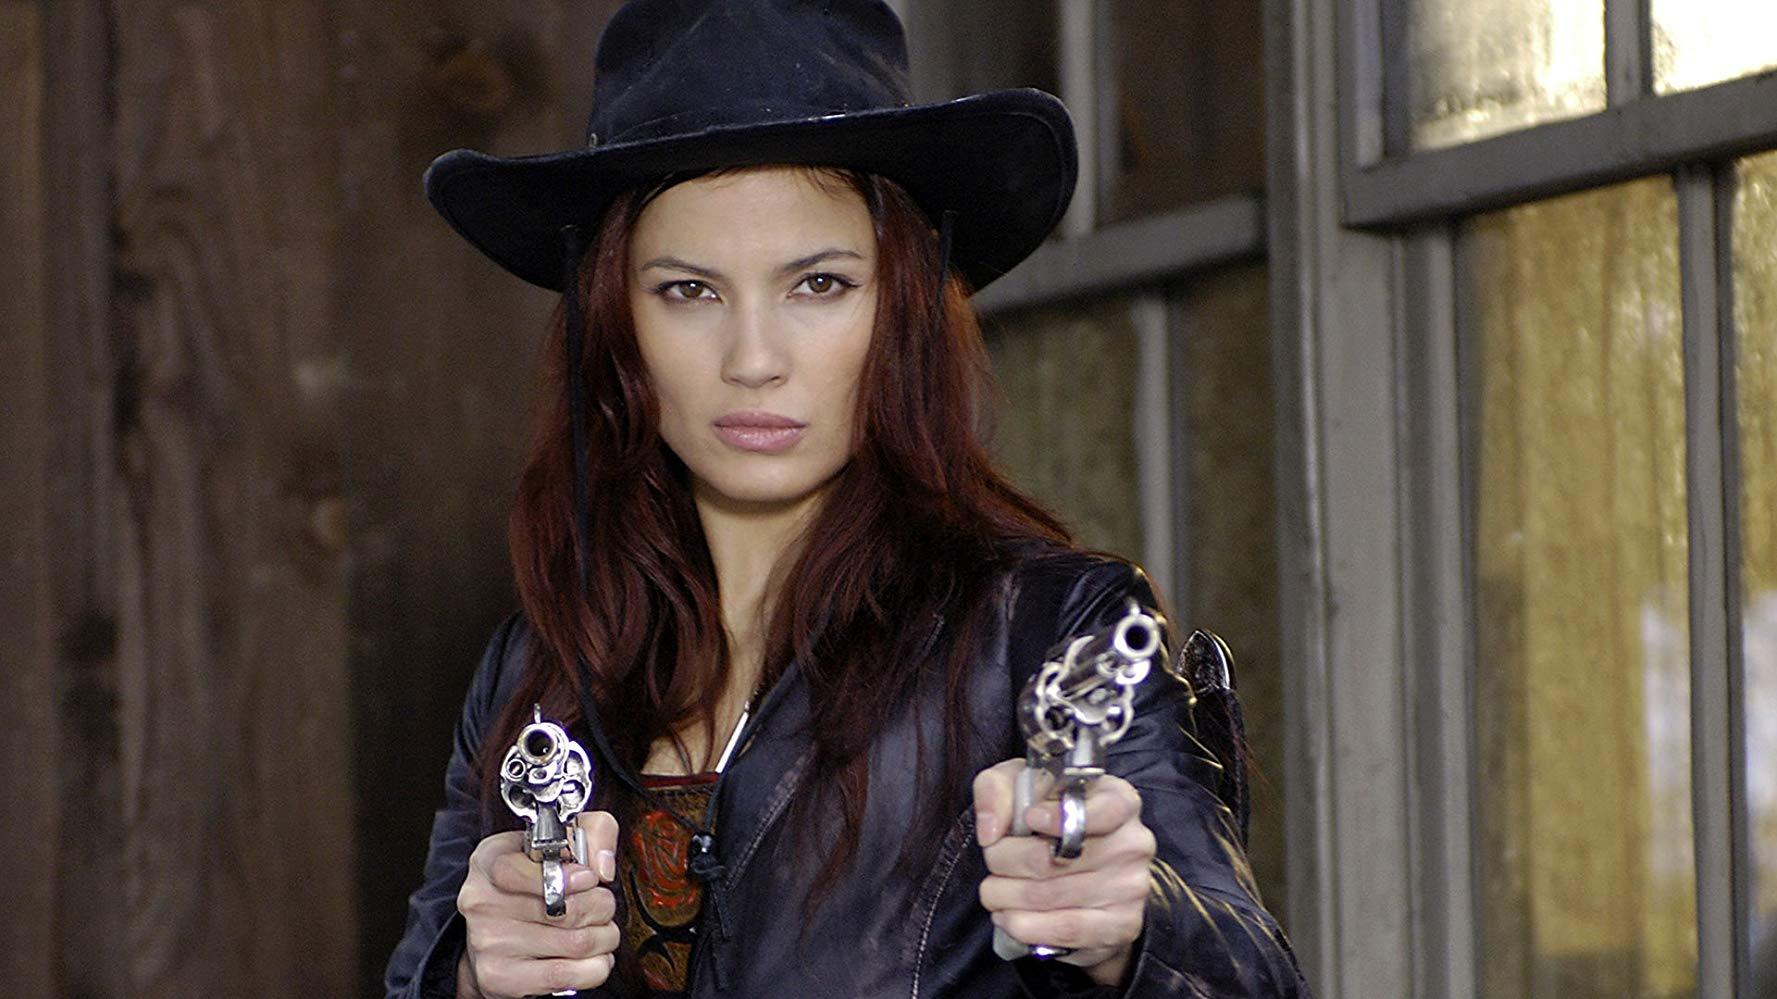 Natassia Malthe steps into the role of Rayne and a Westerns setting in Bloodrayne: Deliverance (2007)